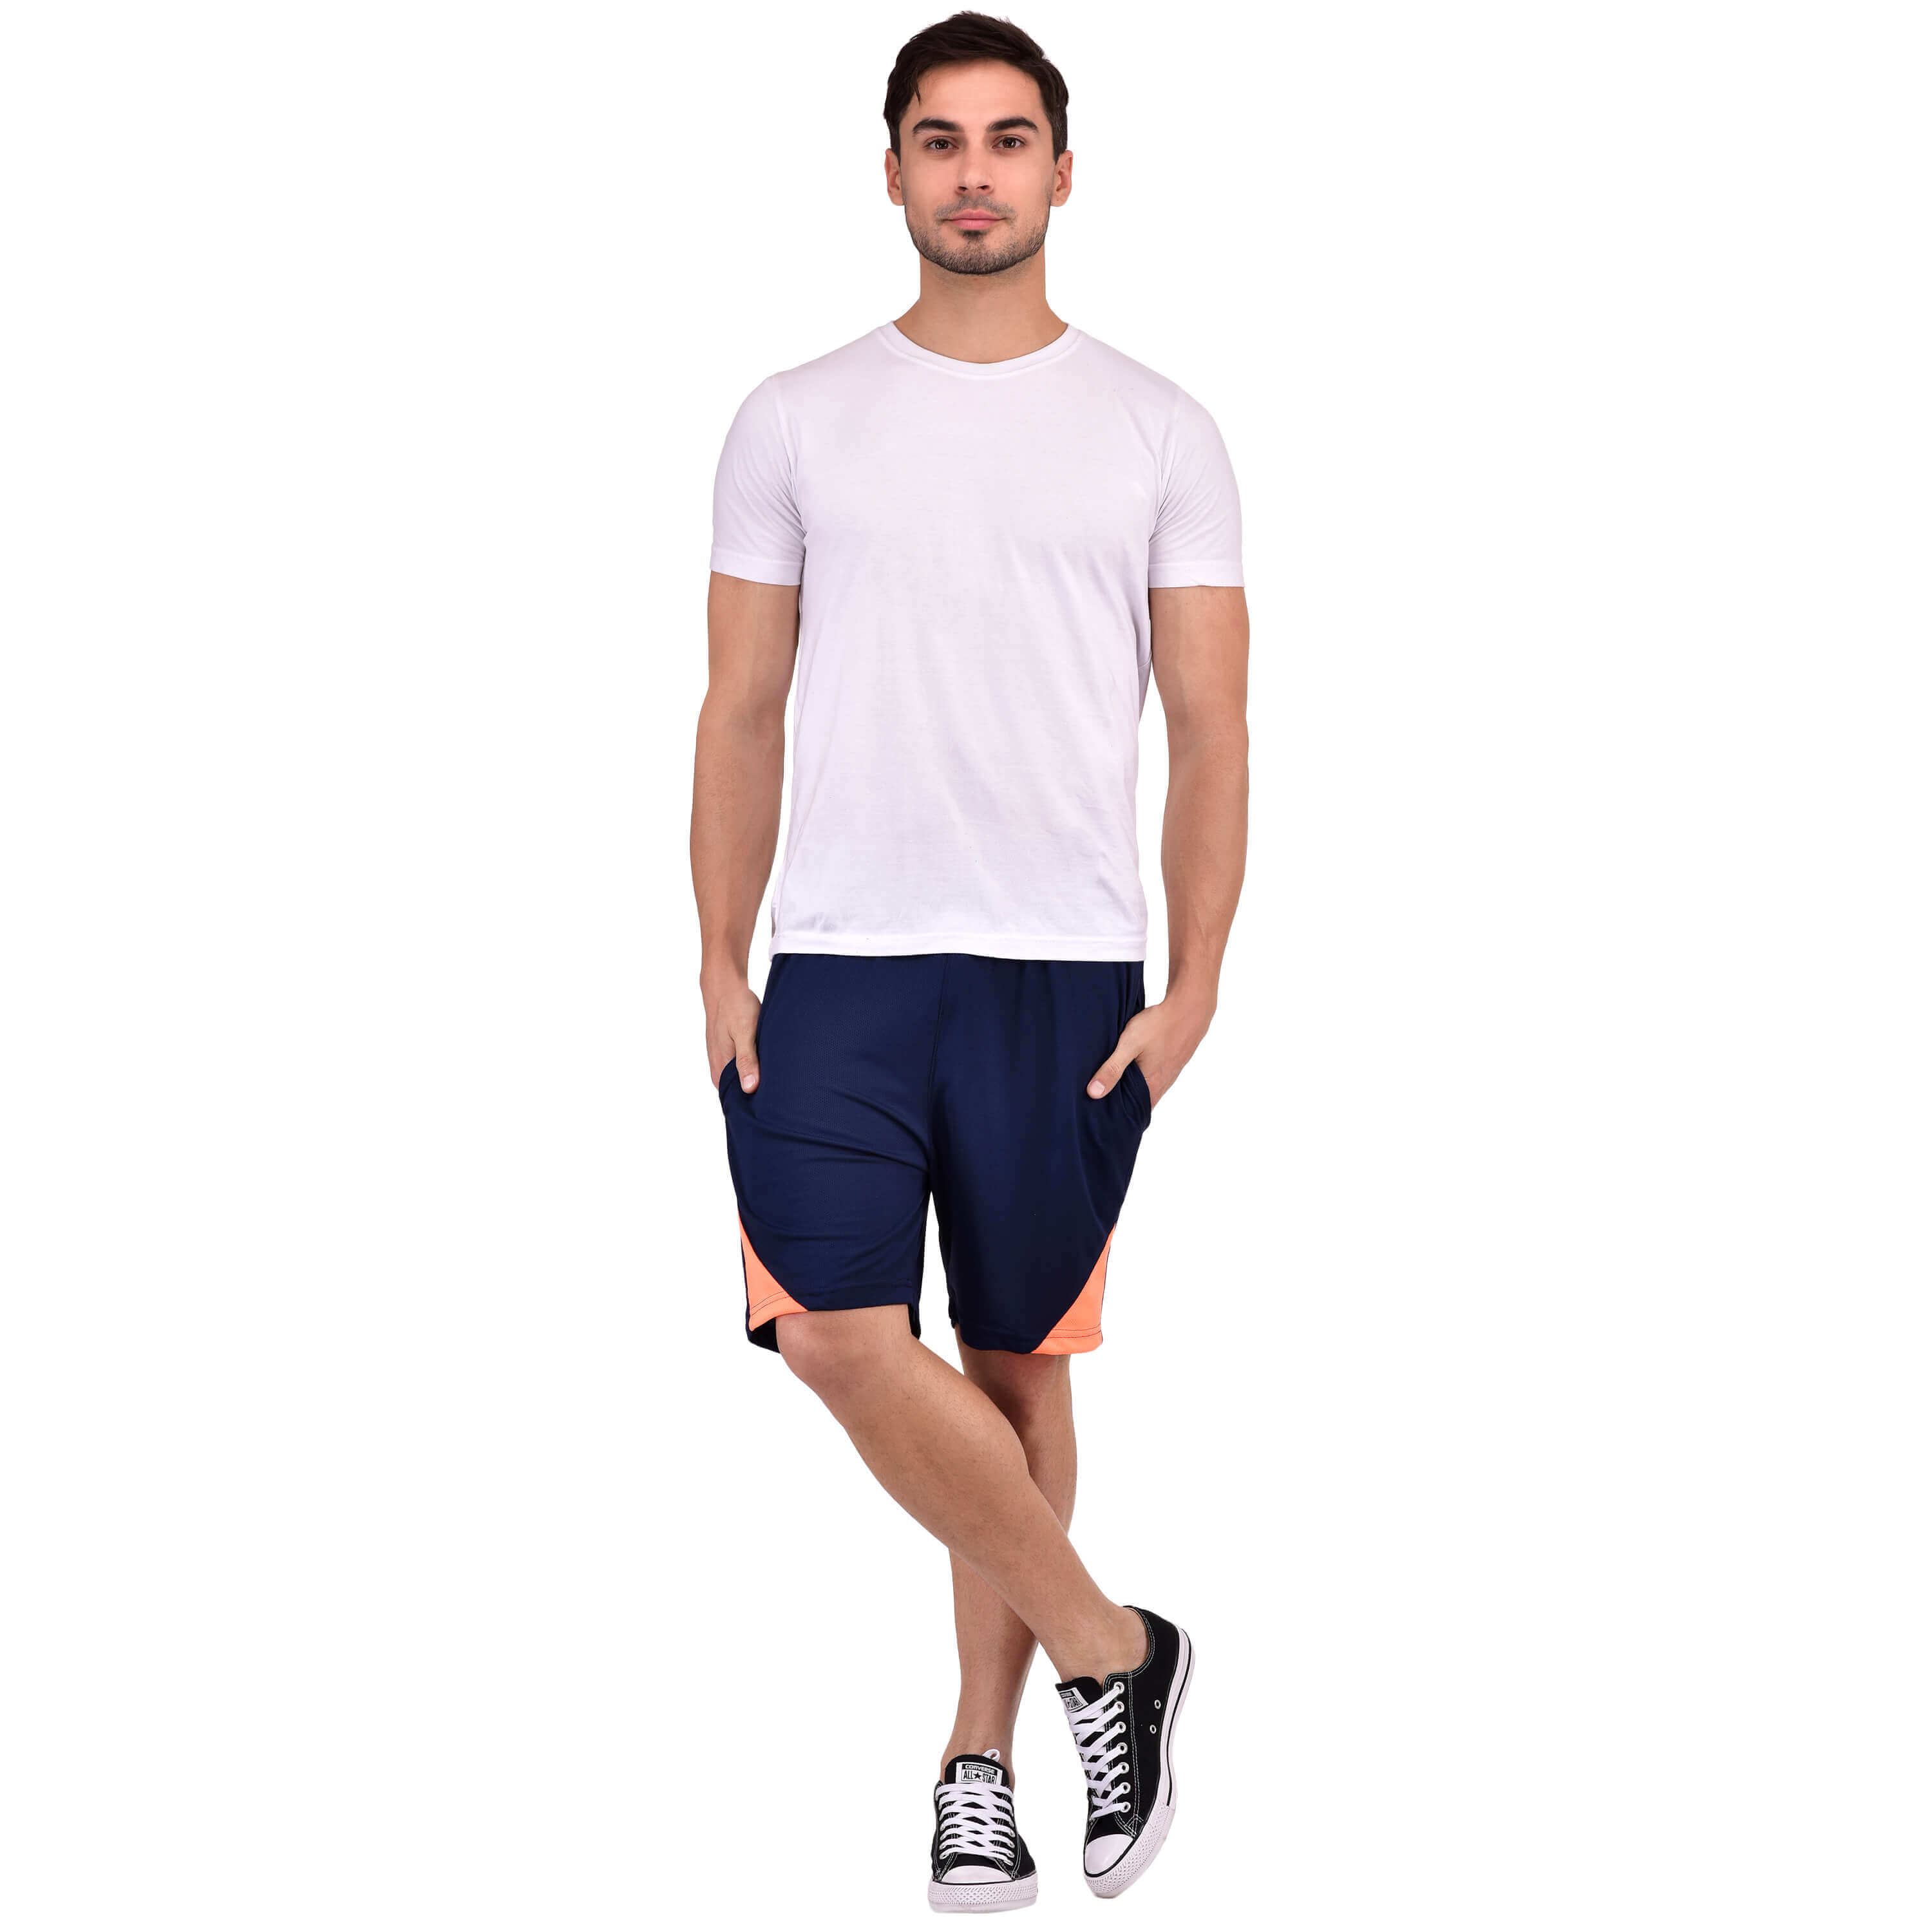 Cotton T Shirts Manufacturers in United-states-of-america